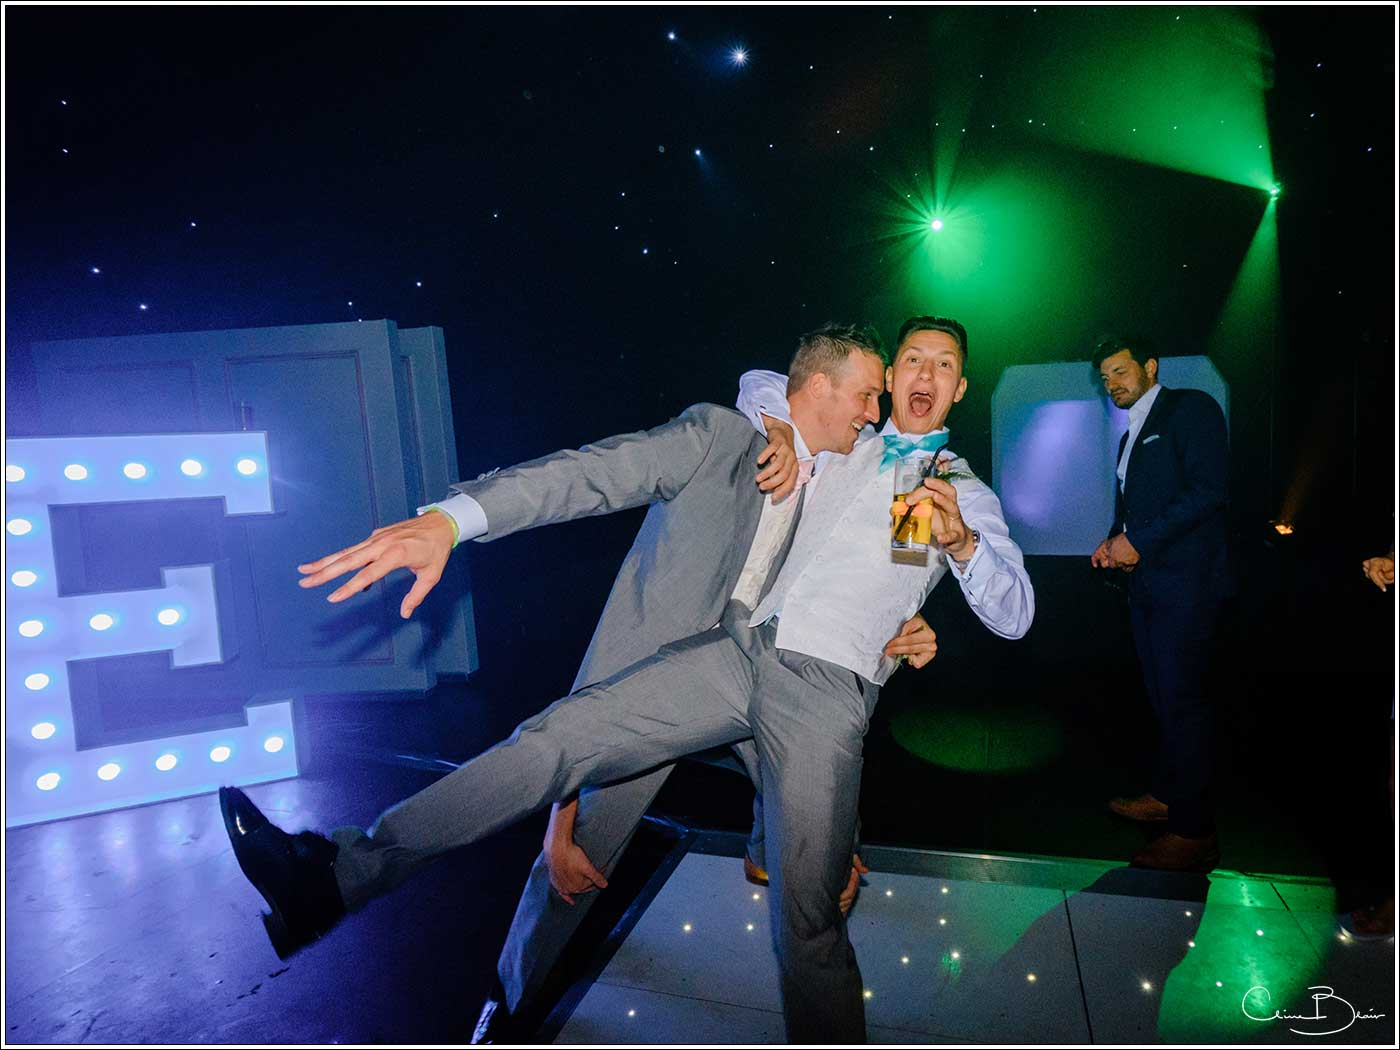 Coombe Abbey wedding photography showing groom and another man on the dance floor